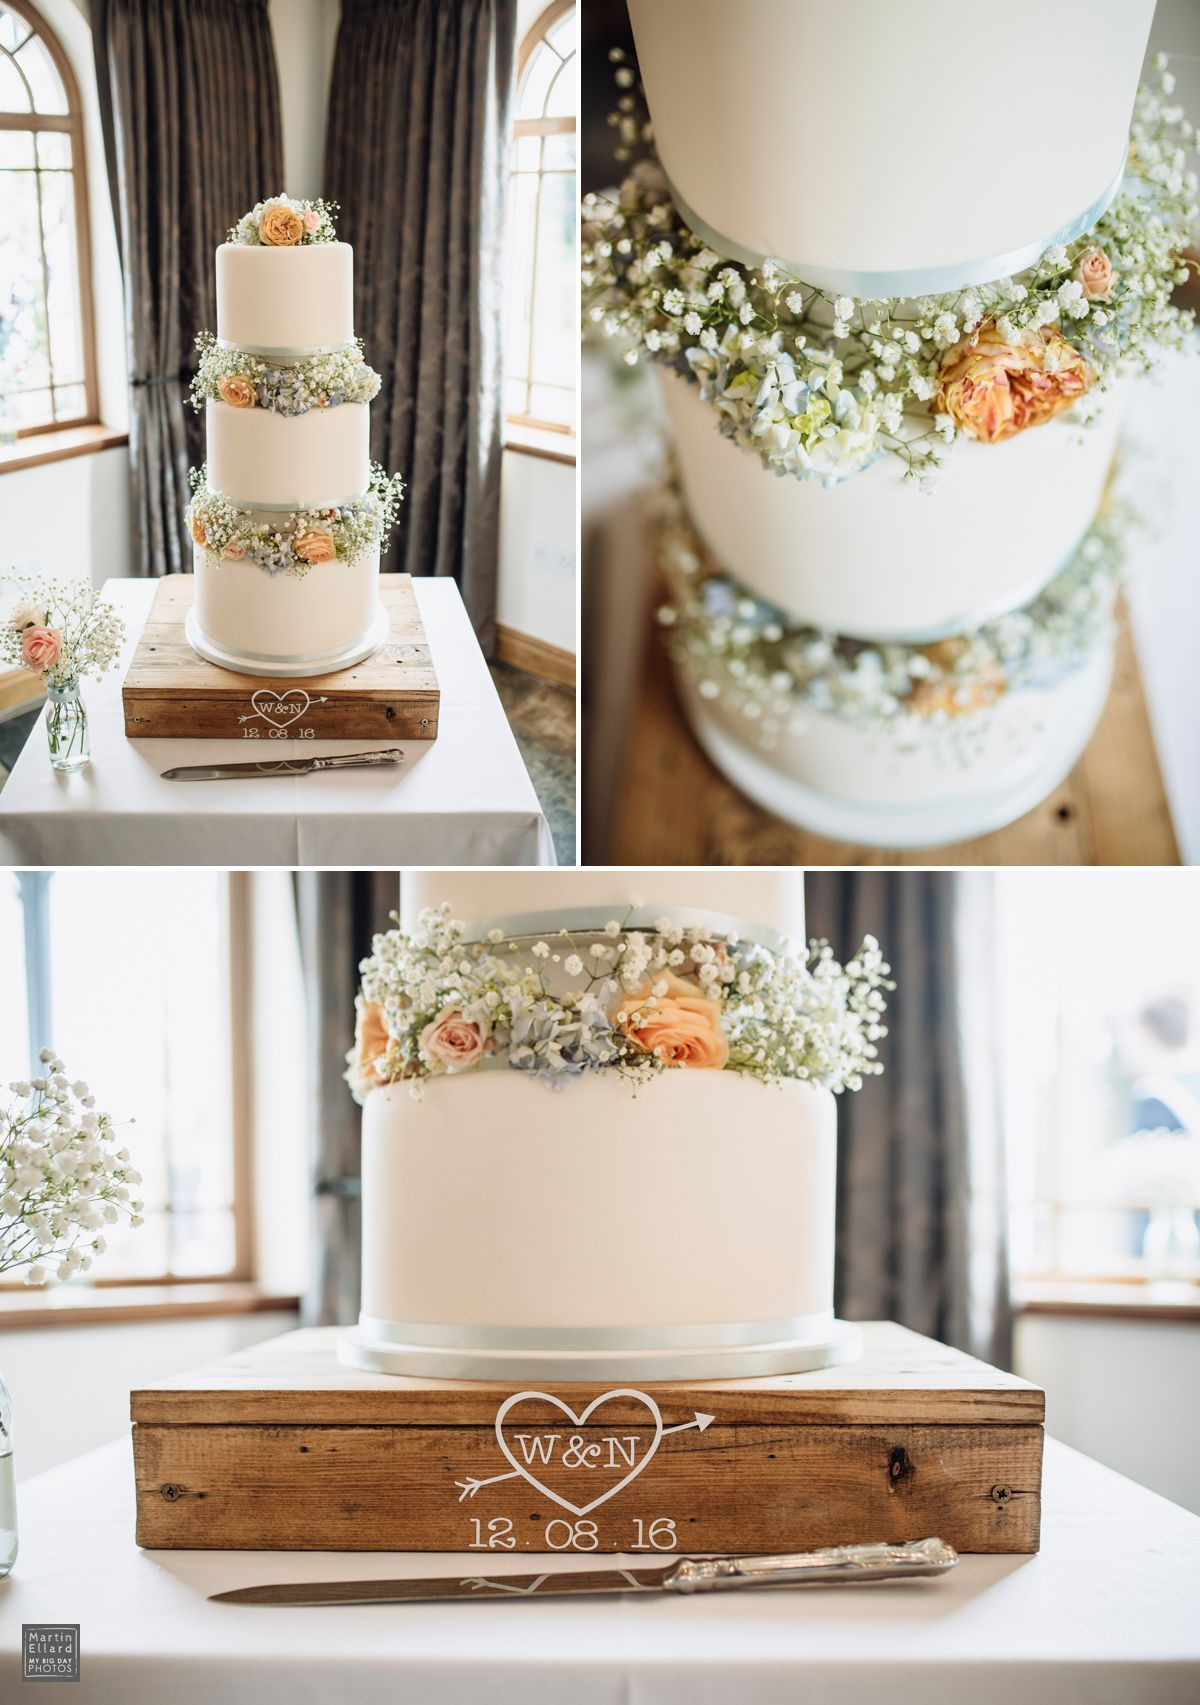 Swansea Wedding Cake Designer Httpswwwfacebookcom - Wedding Cake Swansea